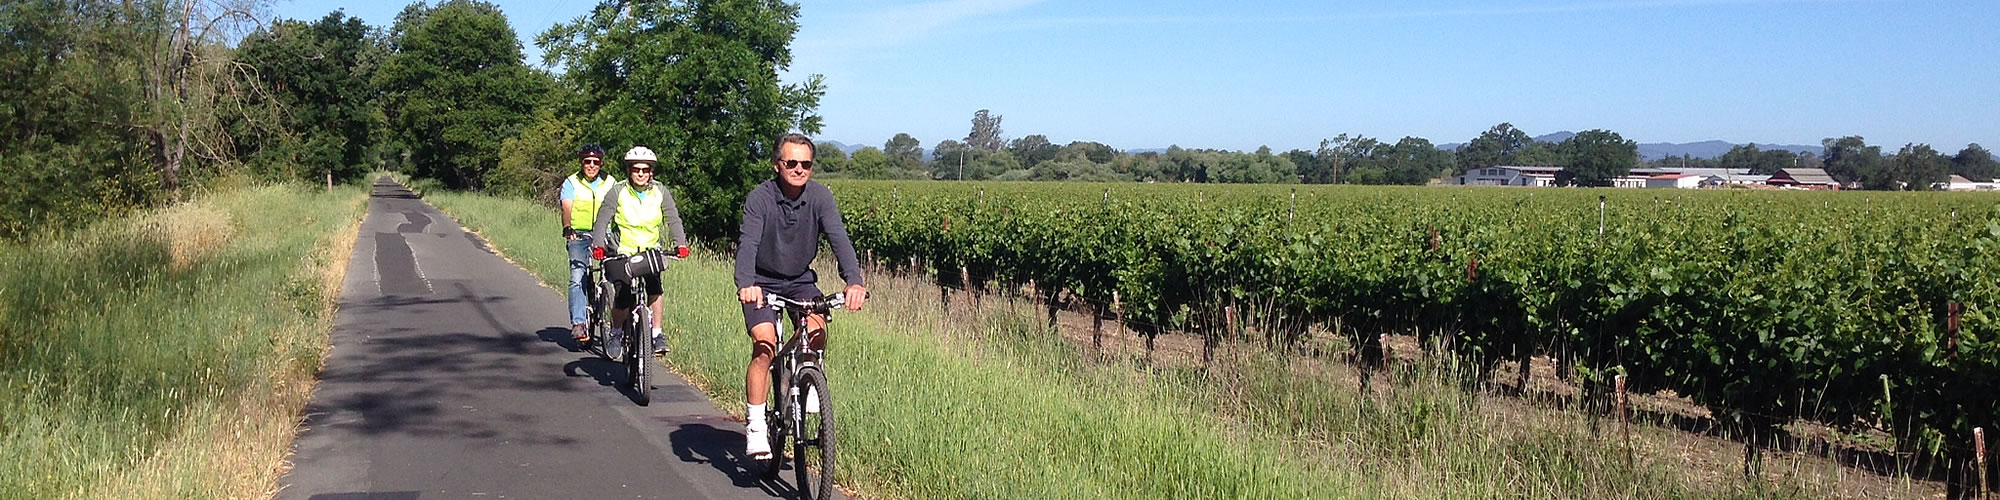 sonoma wine country bicycle paths